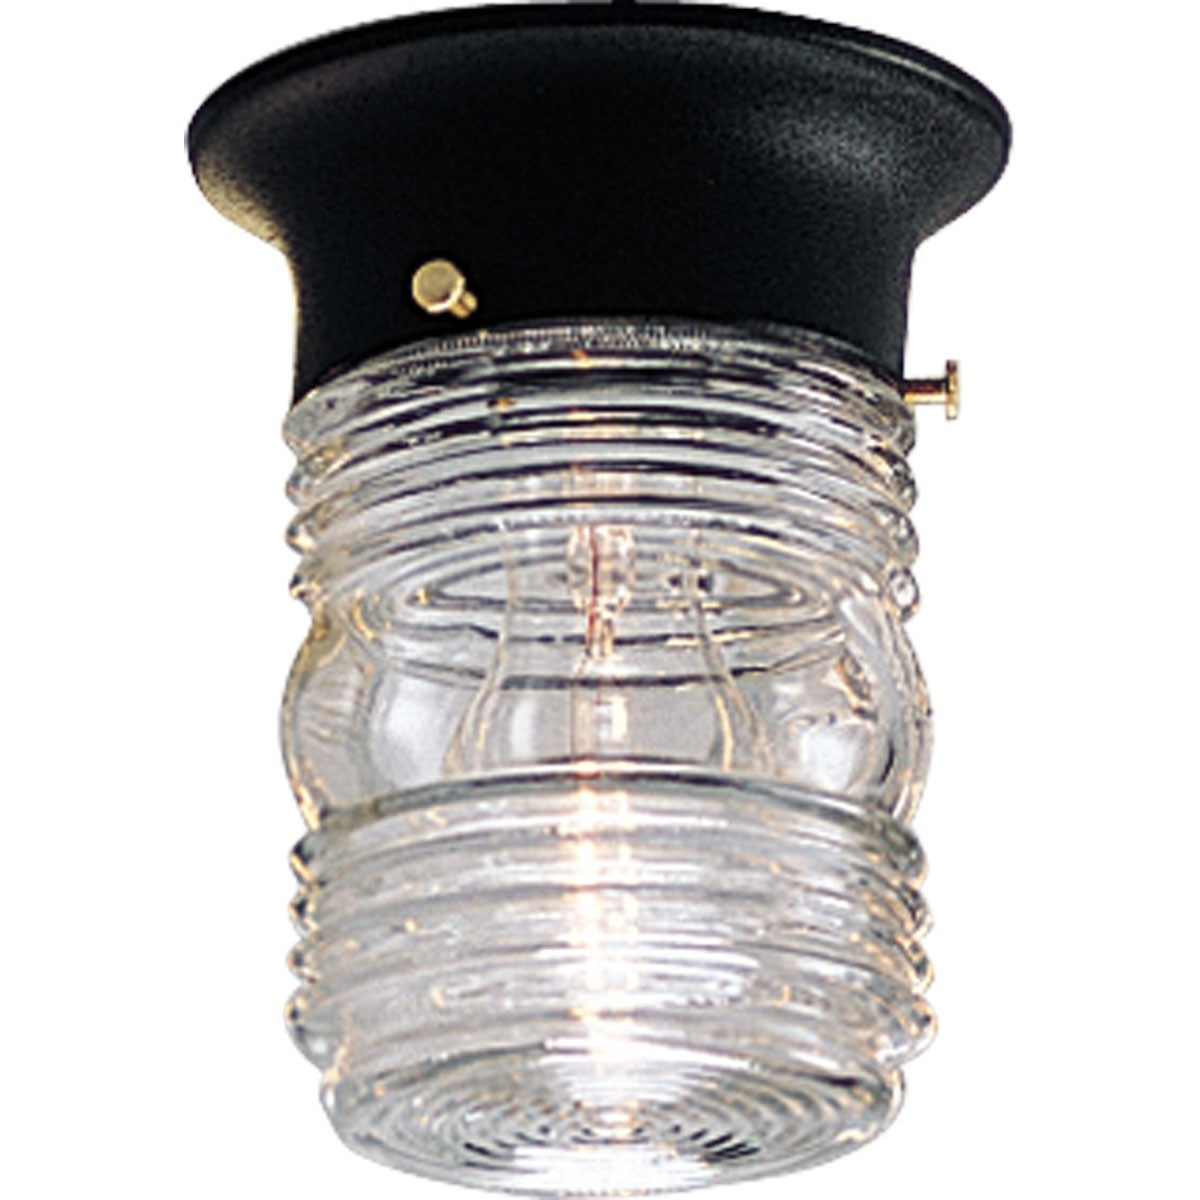 Most Recently Released Outdoor Ceiling Flush Mount Light Fixture With Clear Marine Glass Within Outdoor Ceiling Flush Mount Lights (View 11 of 20)